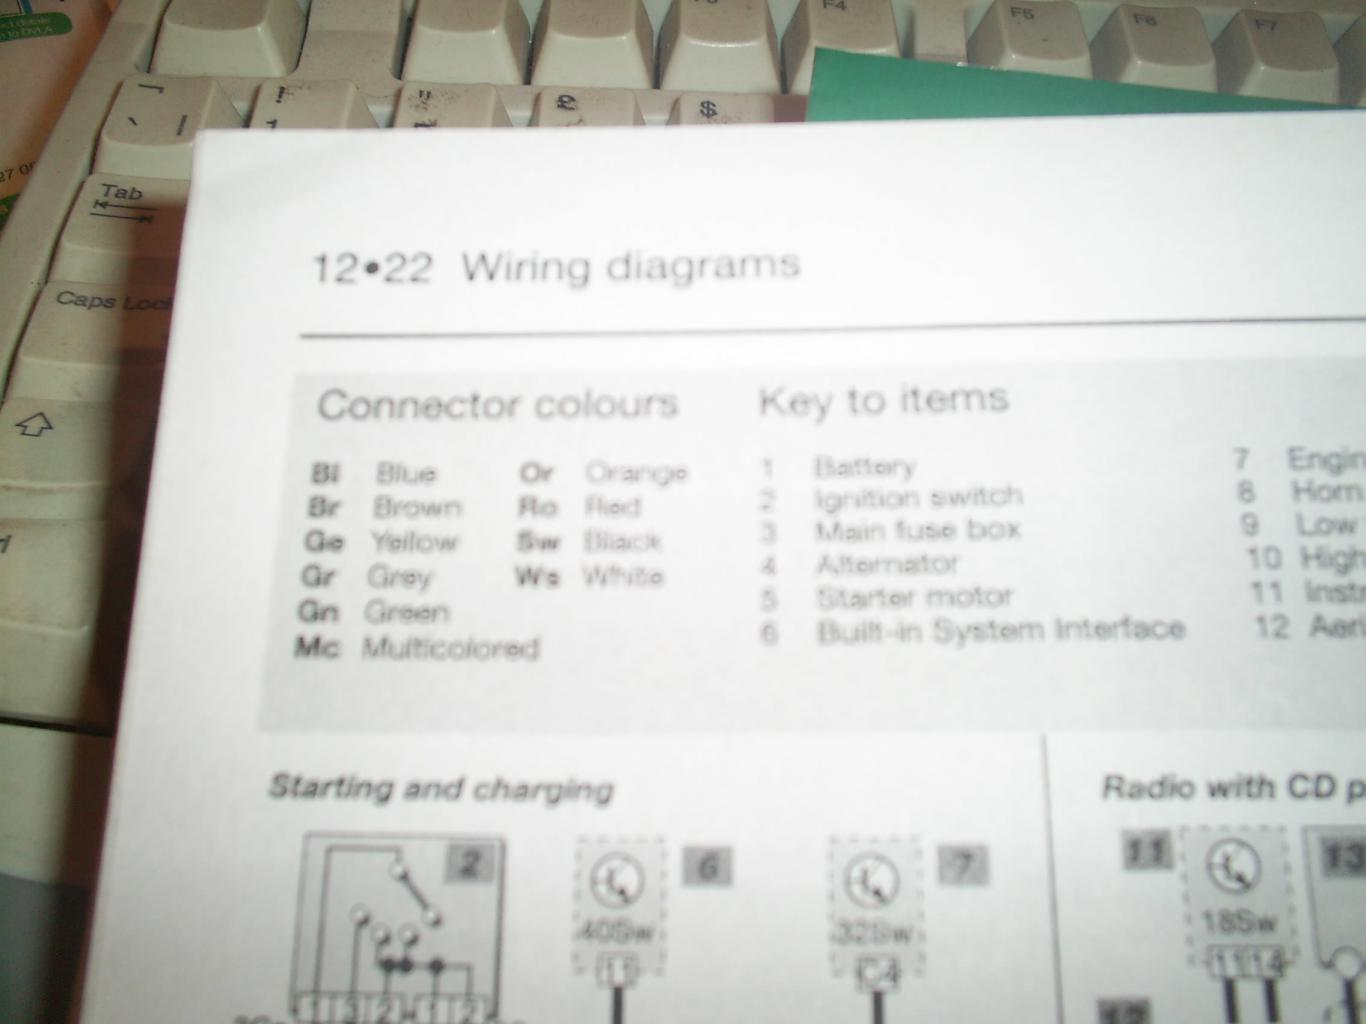 Peugeot 307 Stereo Wiring Diagram 33 Images Fuse Box Radio Forums 46969d1478202804 Sw 2007 Rd4 S4021375